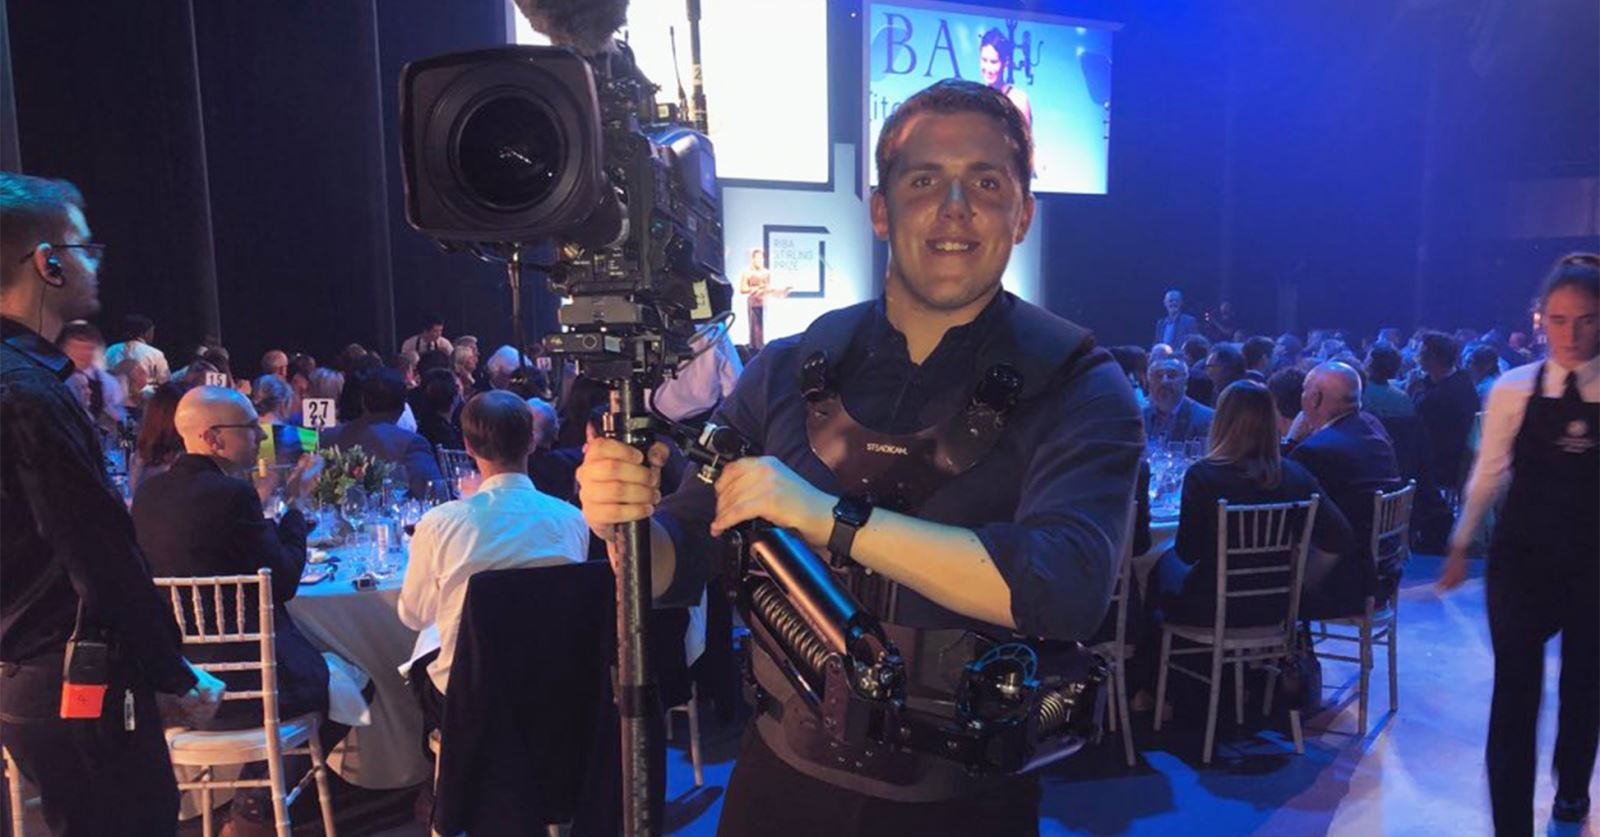 Welcome to new GTC member BBC News cameraman/editor Rob Taylor, seen here covering the Turner Prize last year